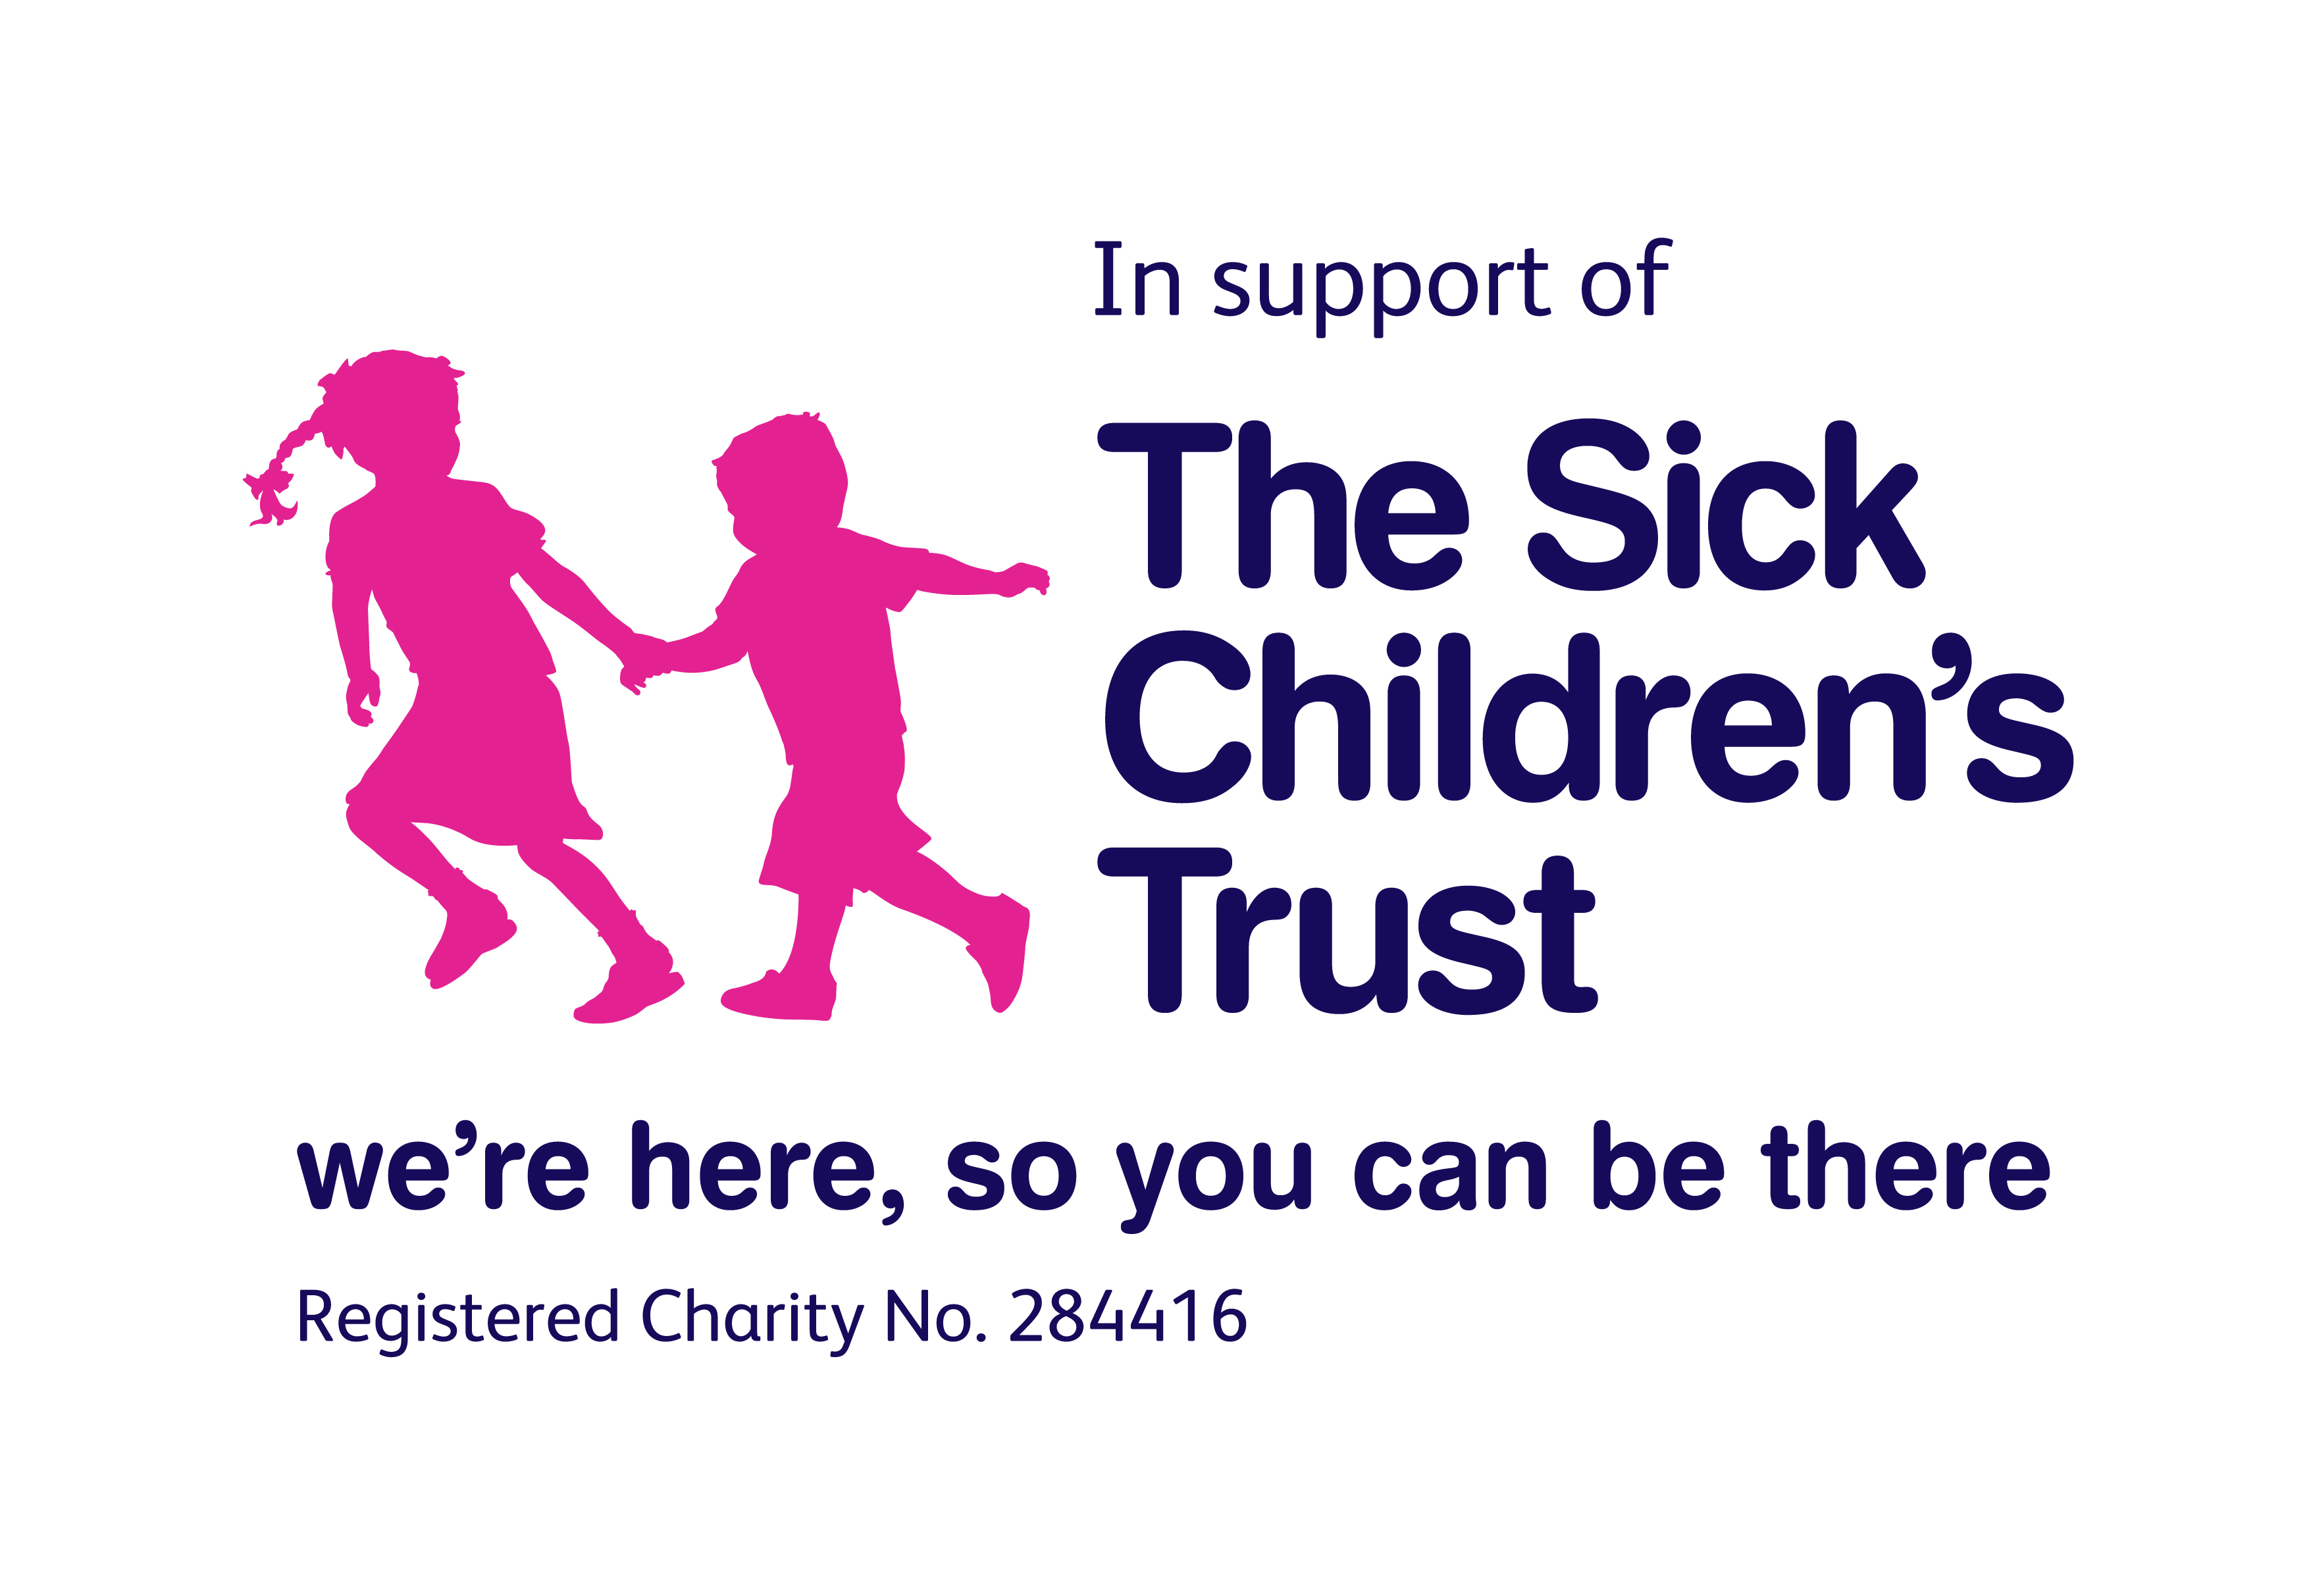 Full-logo-pink-kids-with-in-support-of-and-charity-no.jpg